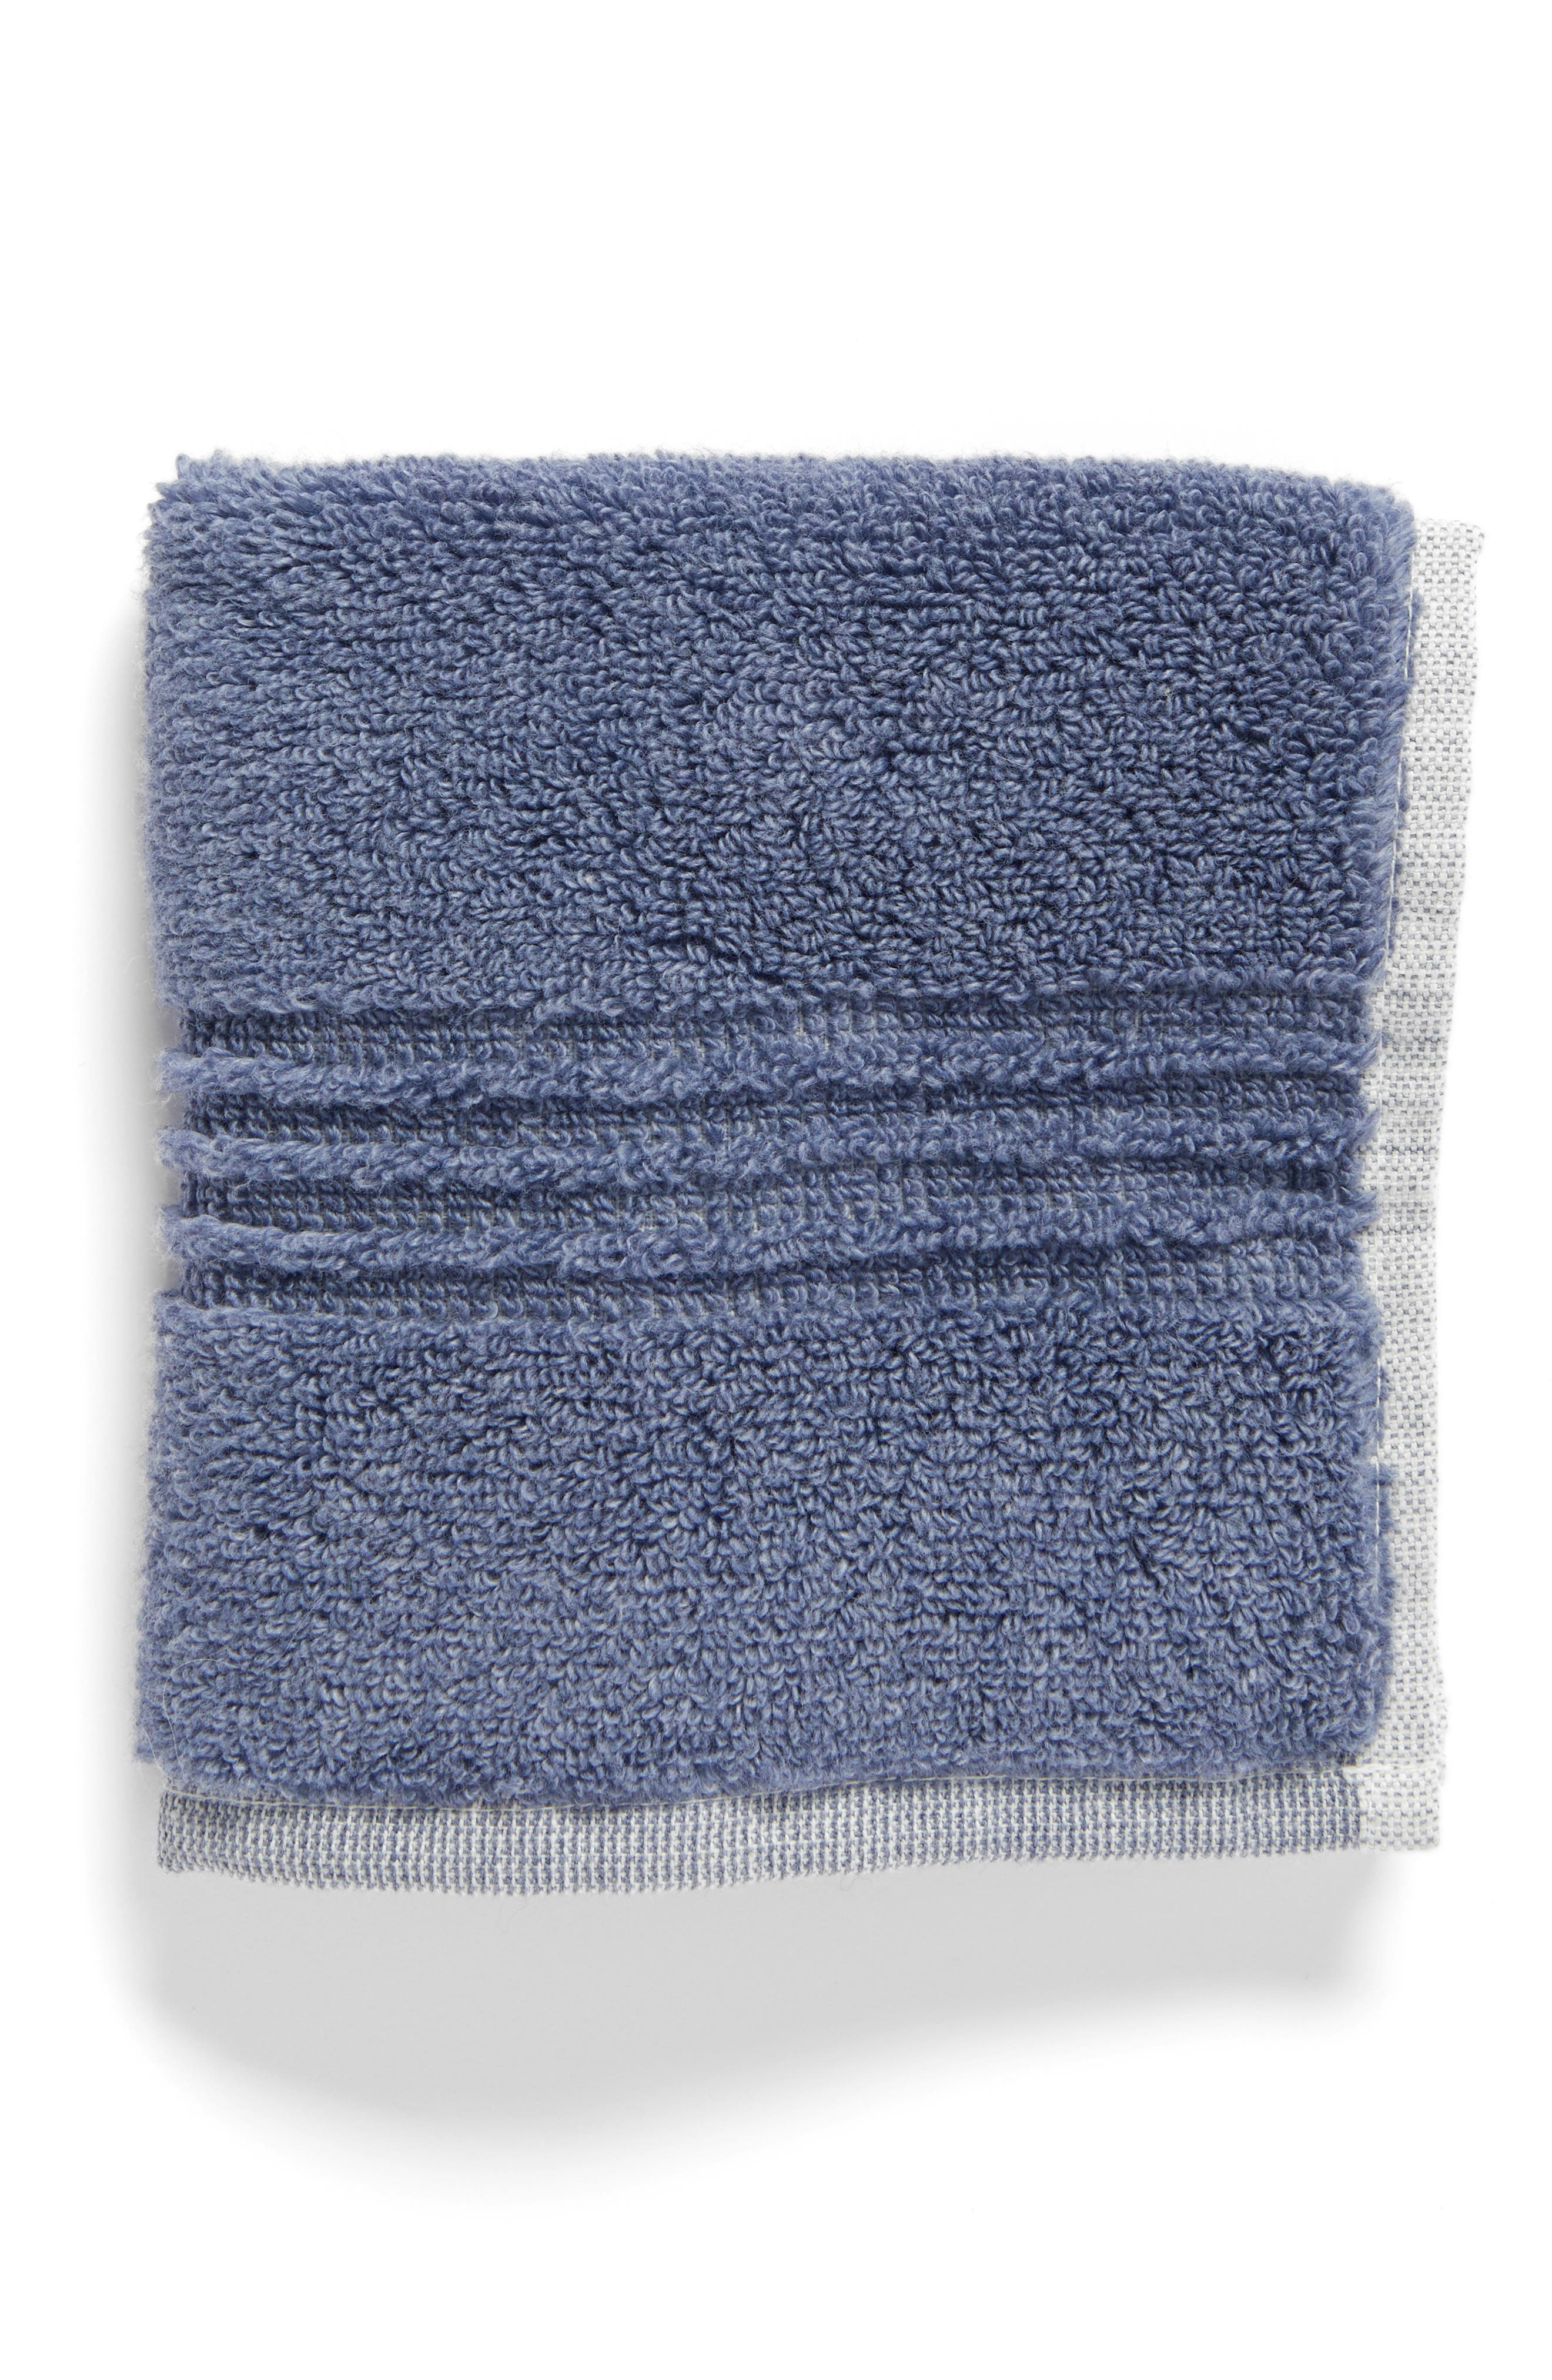 Alternate Image 1 Selected - Nordstrom at Home Organic Hydrocotton Heathered Washcloth (2 for $17)